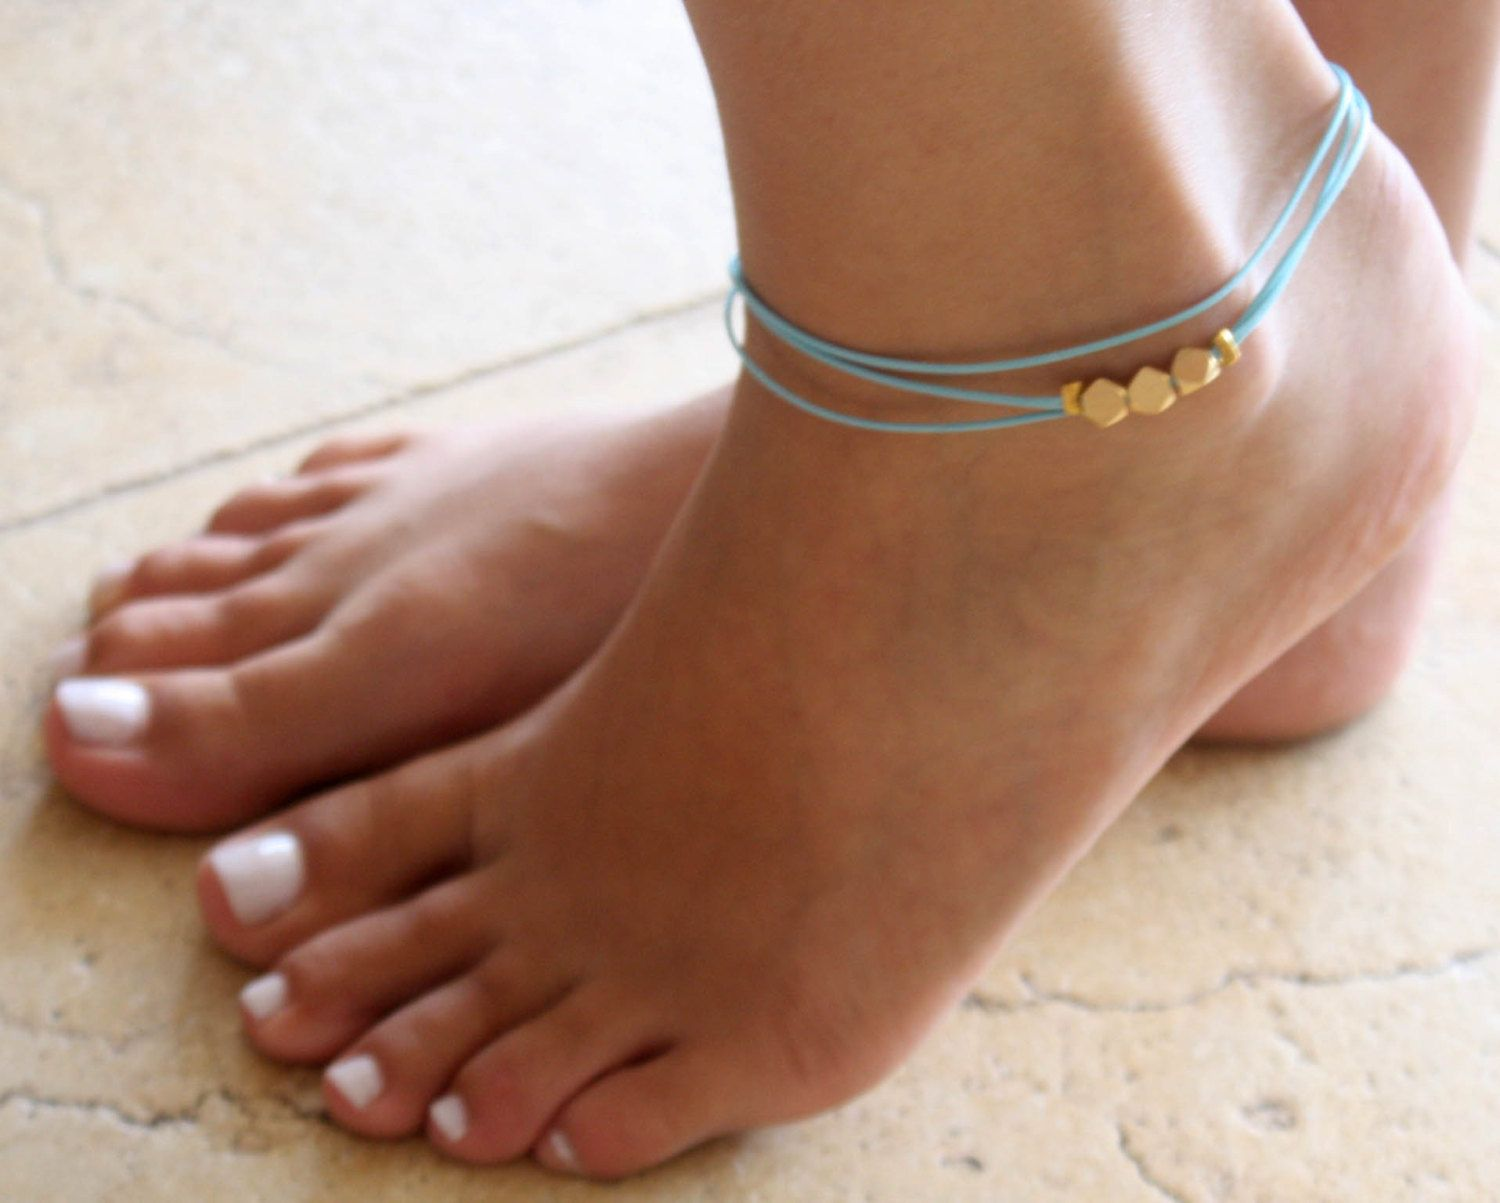 american watches ankle turquoise white anklet in bracelets ethnic native jewelry bracelet pin